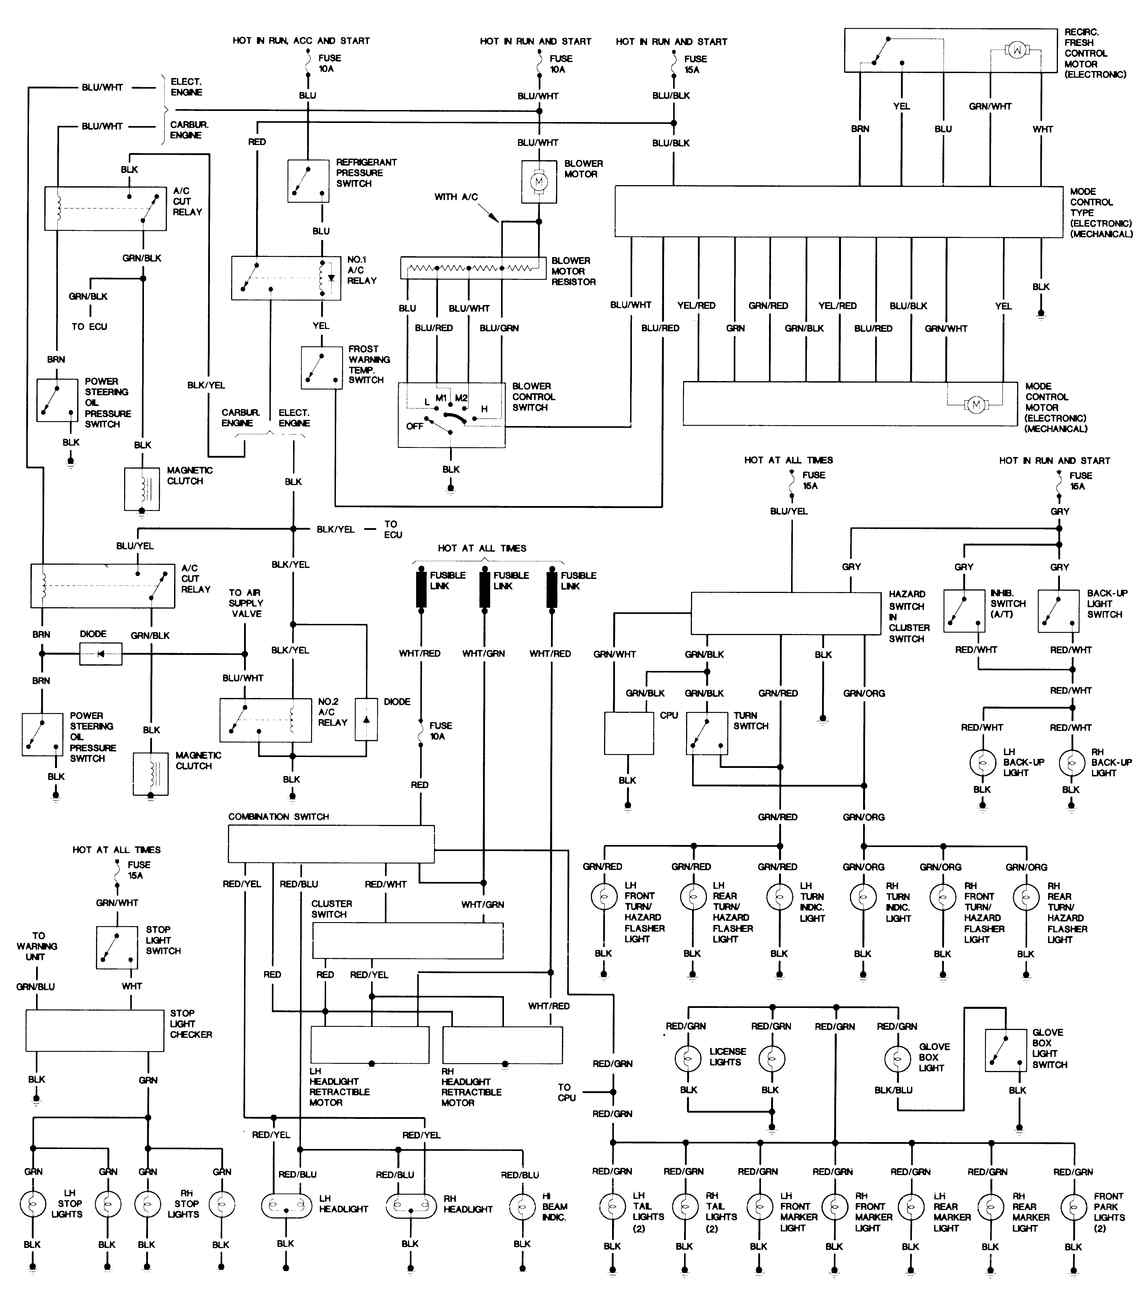 85816141l wiring diagrams 1980 mazda rx7 wiring diagram at creativeand.co